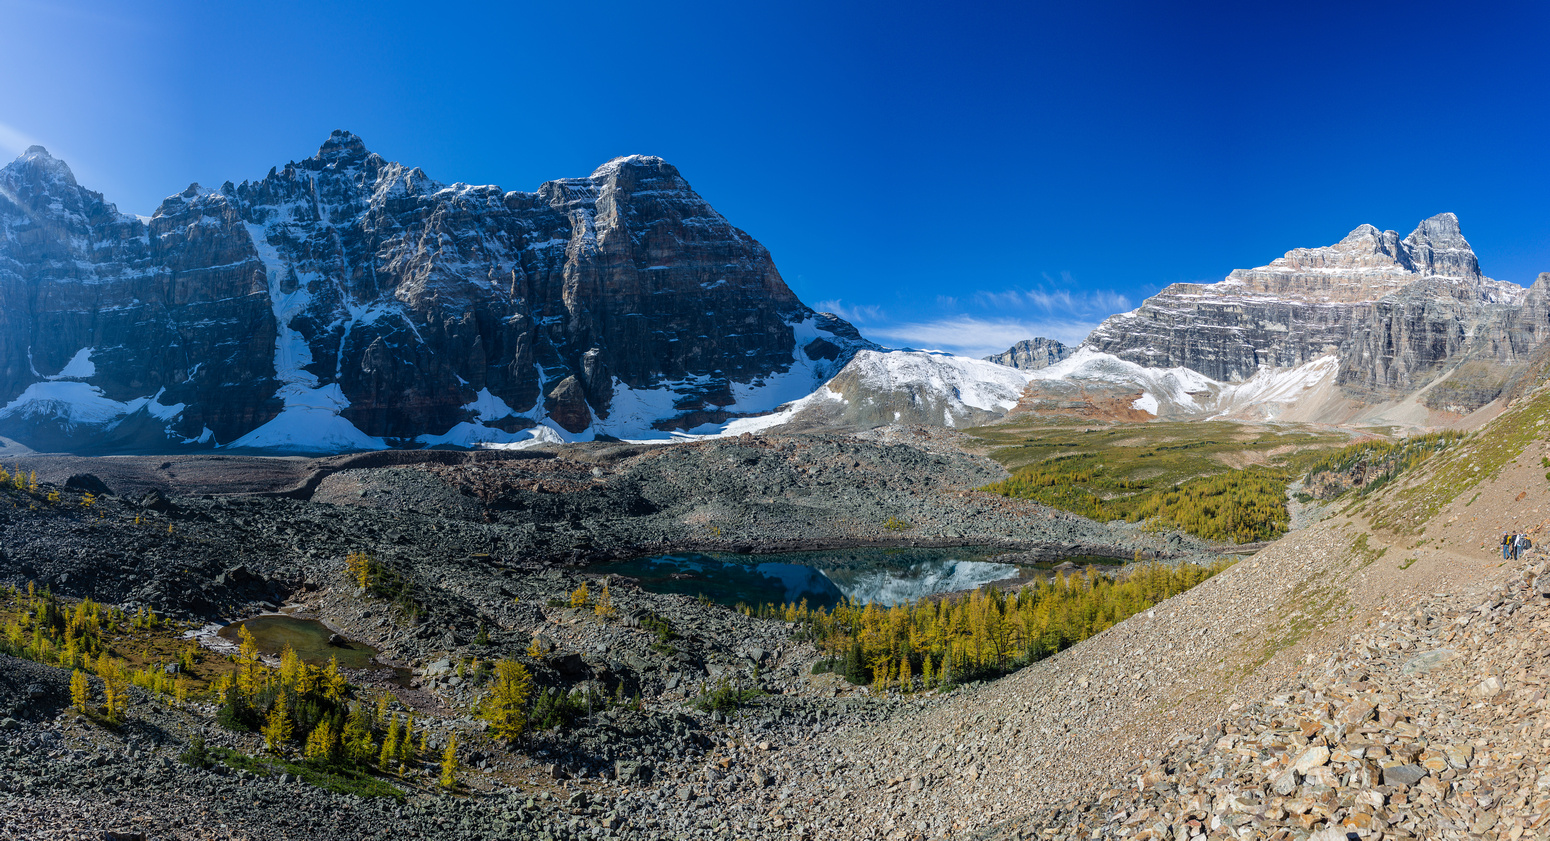 A beautiful fall day. Eiffel Lake, Deltaform, Wenkchemna, Hungabee (L to R) visible.